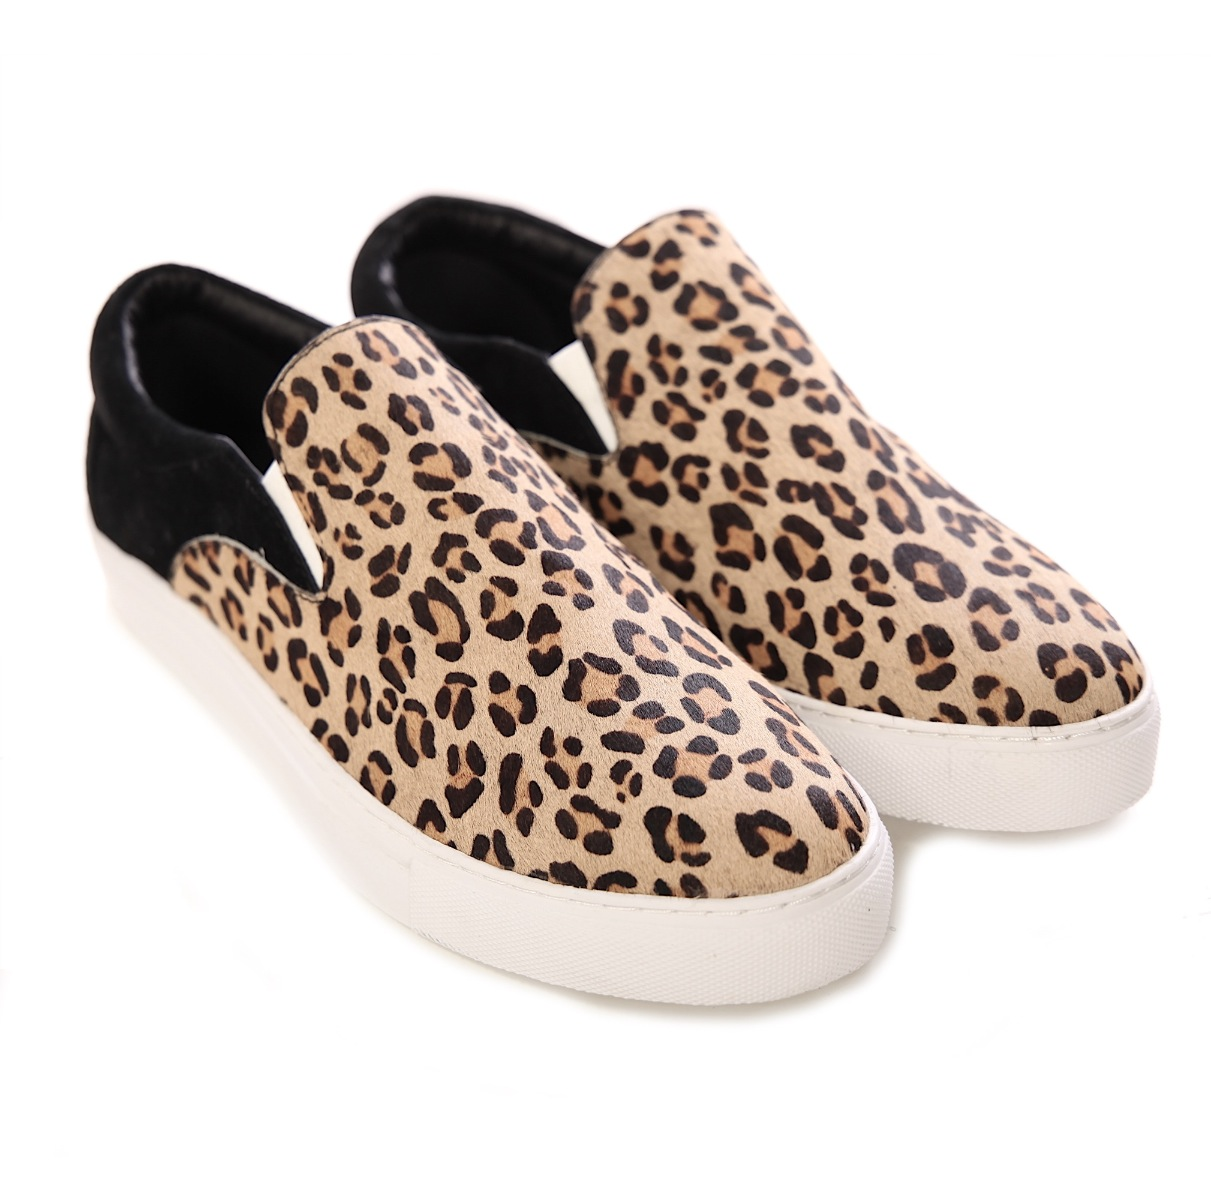 Grind The Sneakers New Designers Homme Beige dCtQsrh